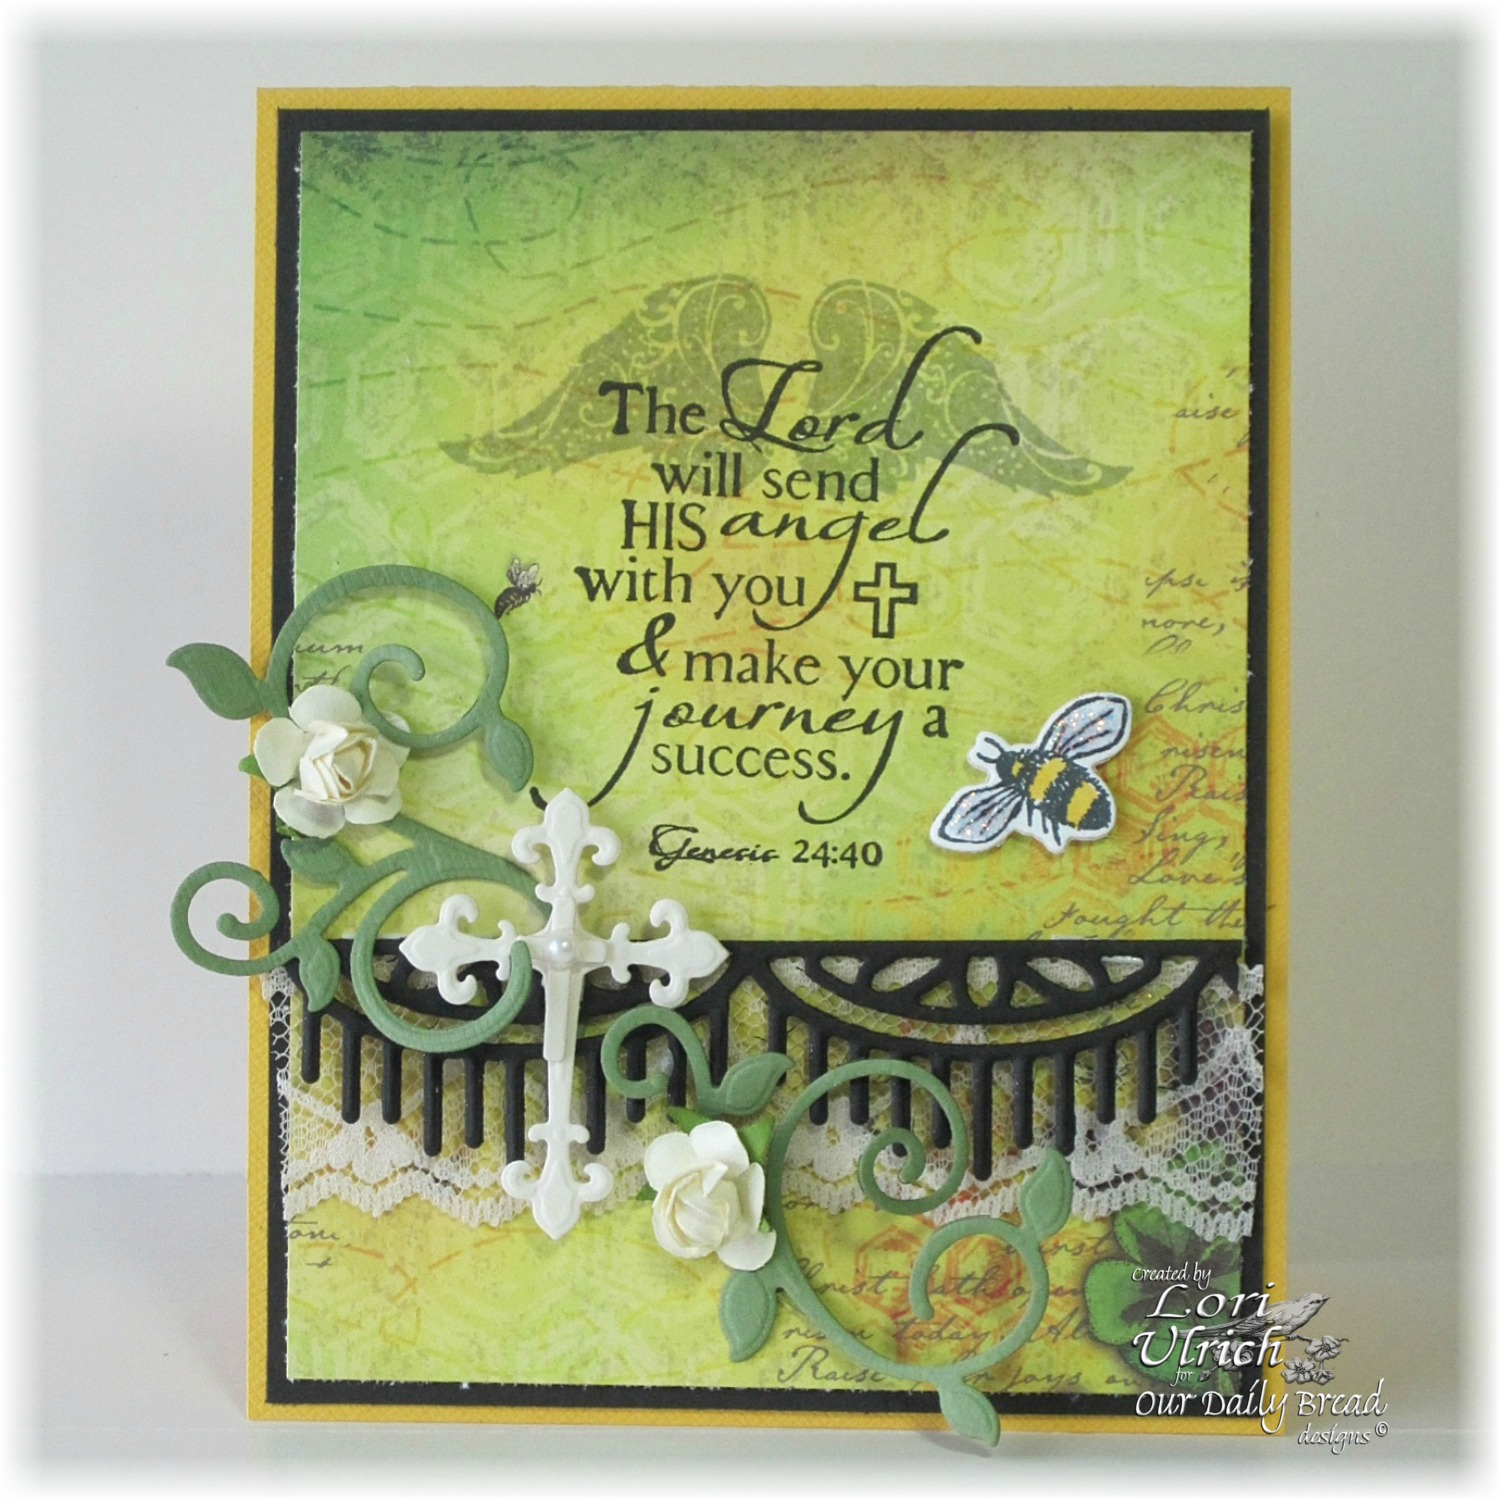 Stamps - Our Daily Bread Designs Zinnia, Holy Angels, ODBD Custom Zinnia and Leaves Die, ODBD Custom Fancy Foliage Die, ODBD Custom Ornamental Crosses Die, ODBD Custom Beautiful Borders Die, ODBD Blooming Garden Paper Collection